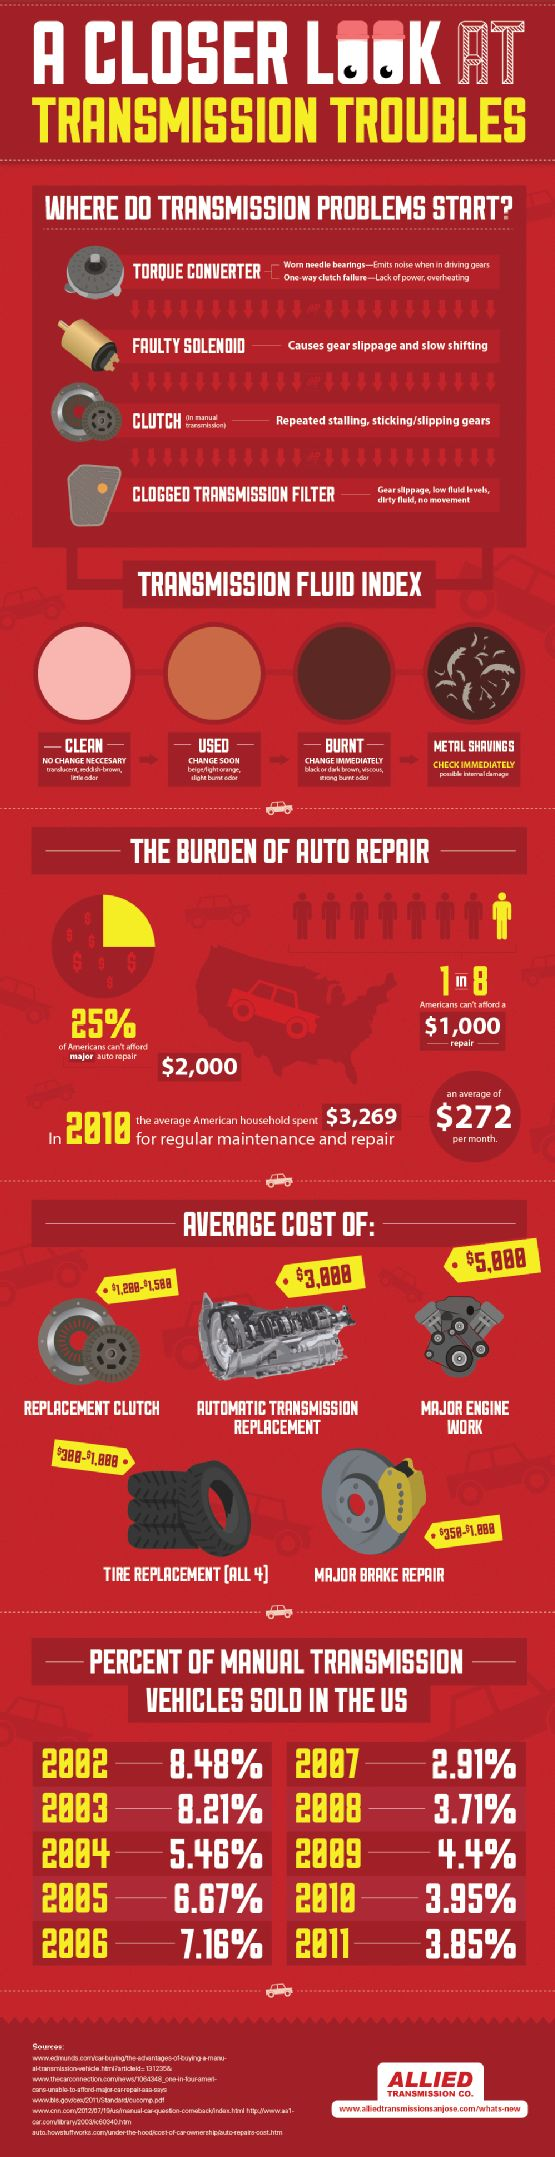 Clean transmission fluid is reddish-brown in color and has almost no odor. Burnt transmission fluid is dark brown or black and has a strong smell. Check out this infographic from San Jose's Allied Transmission Co. to learn more about maintenance. Original Source: http://www.alliedtransmissionsanjose.com/635771/2013/01/30/common-transmission-troubles-infographic.html